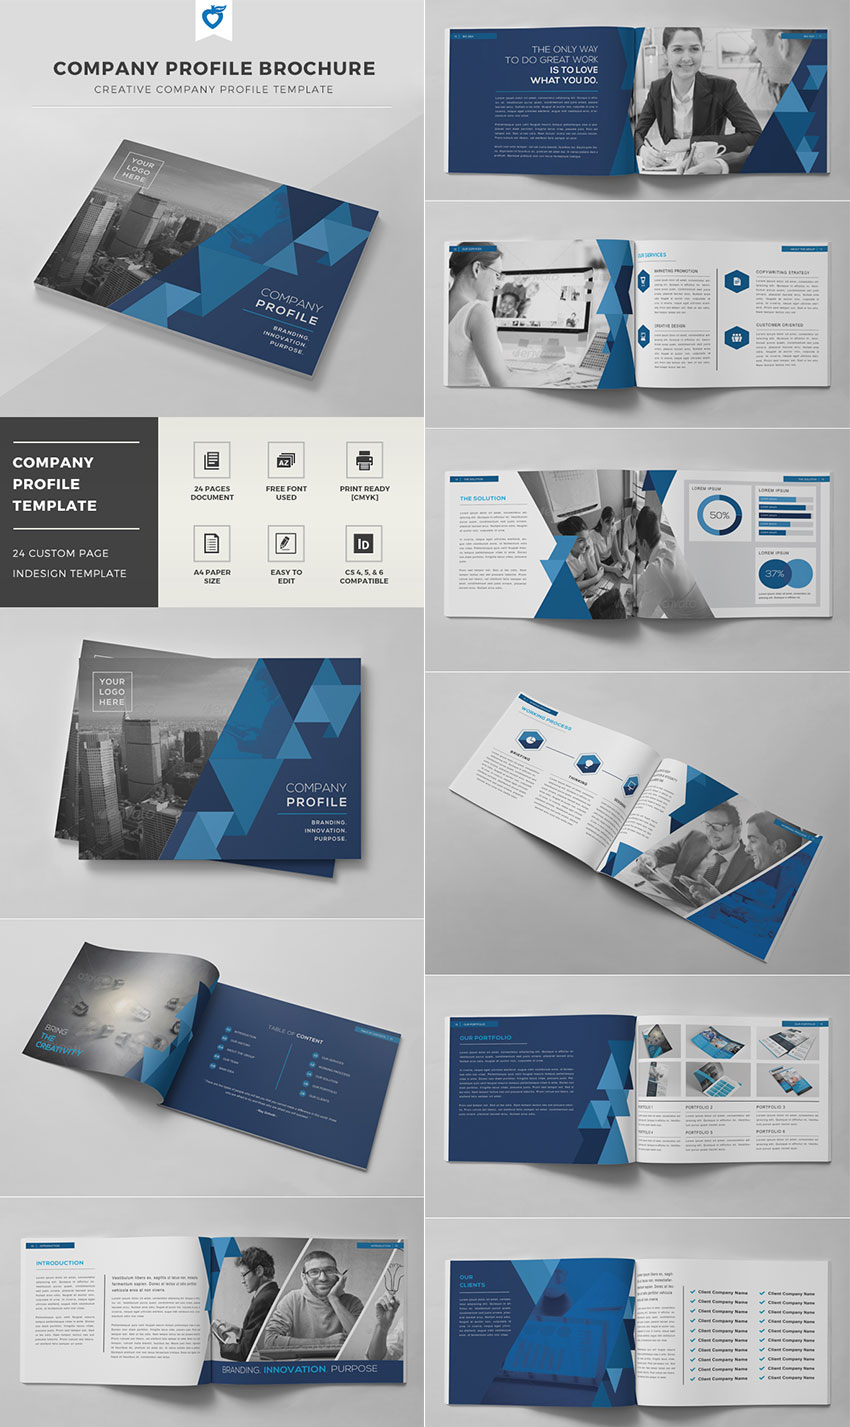 20 best indesign brochure templates for creative business marketing company profile brochure indd template wajeb Images